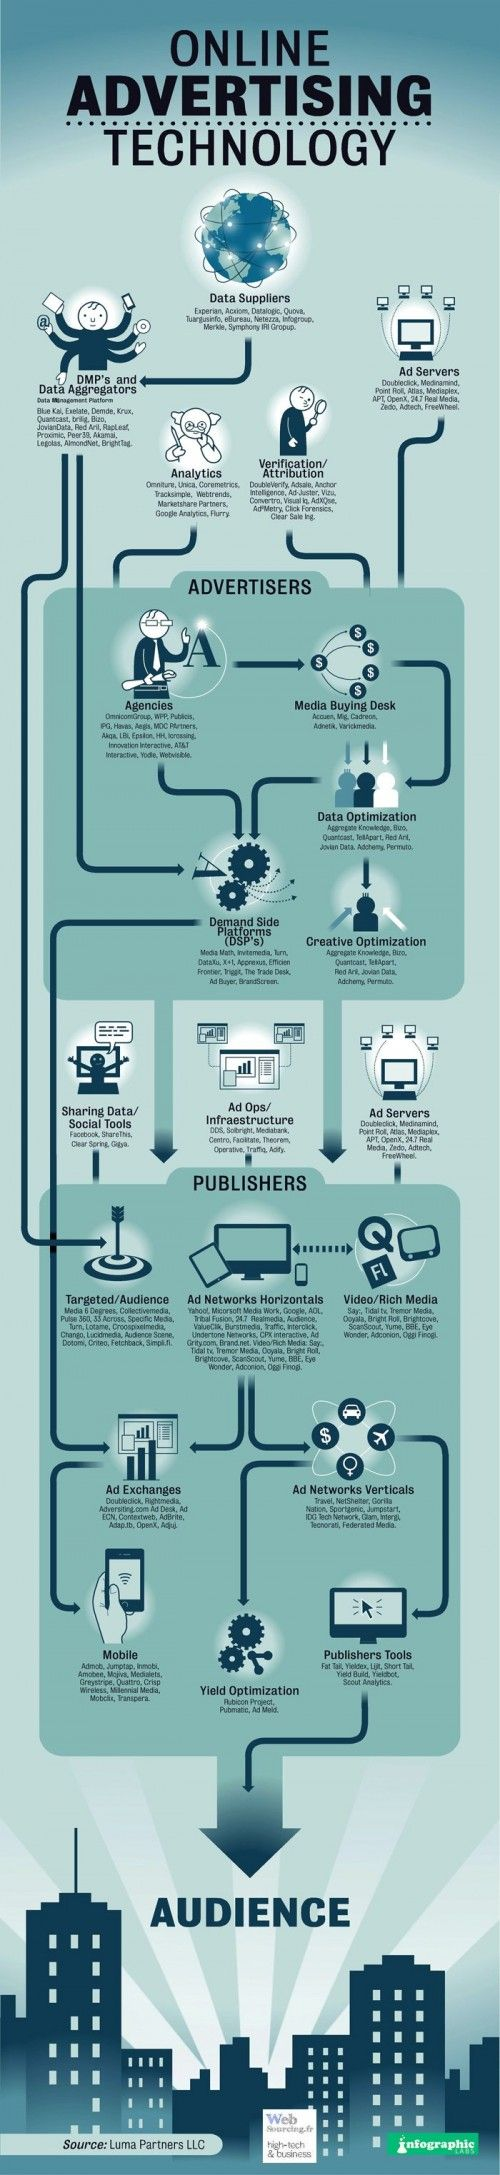 Online advertising technology infographic #dsp #ssp #rta #rtb #adserver